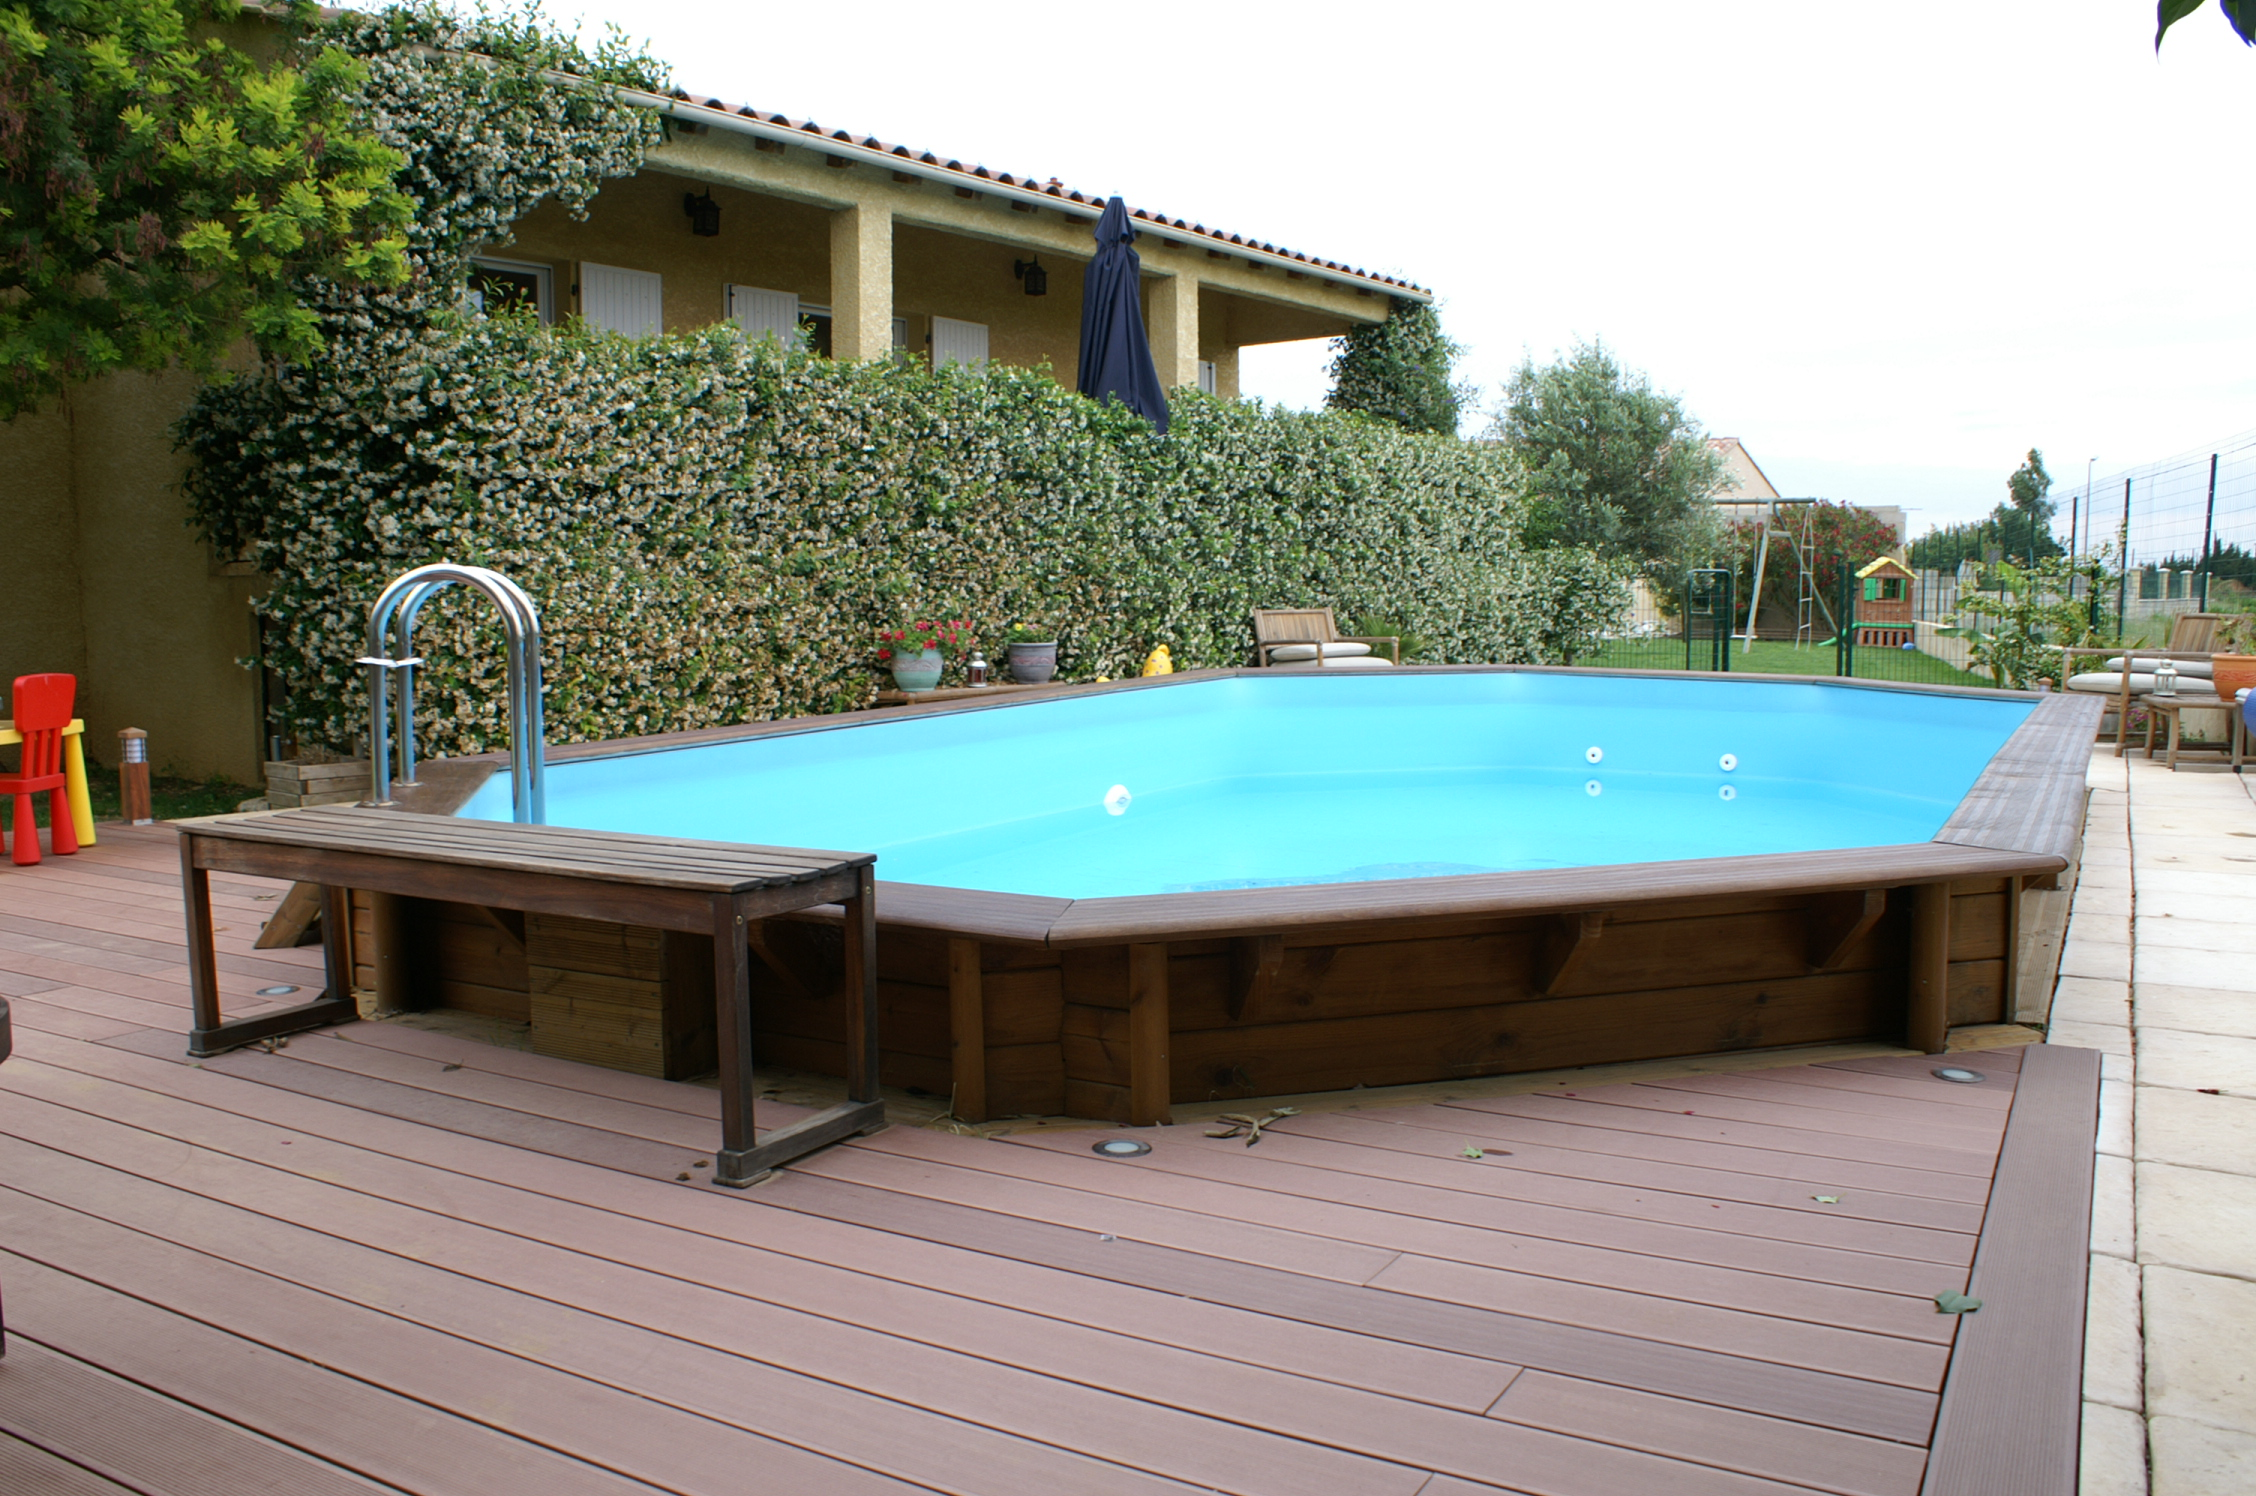 Construction piscines nimes gepad piscines et spa 30000 for Piscine hors sol hauteur 1m60